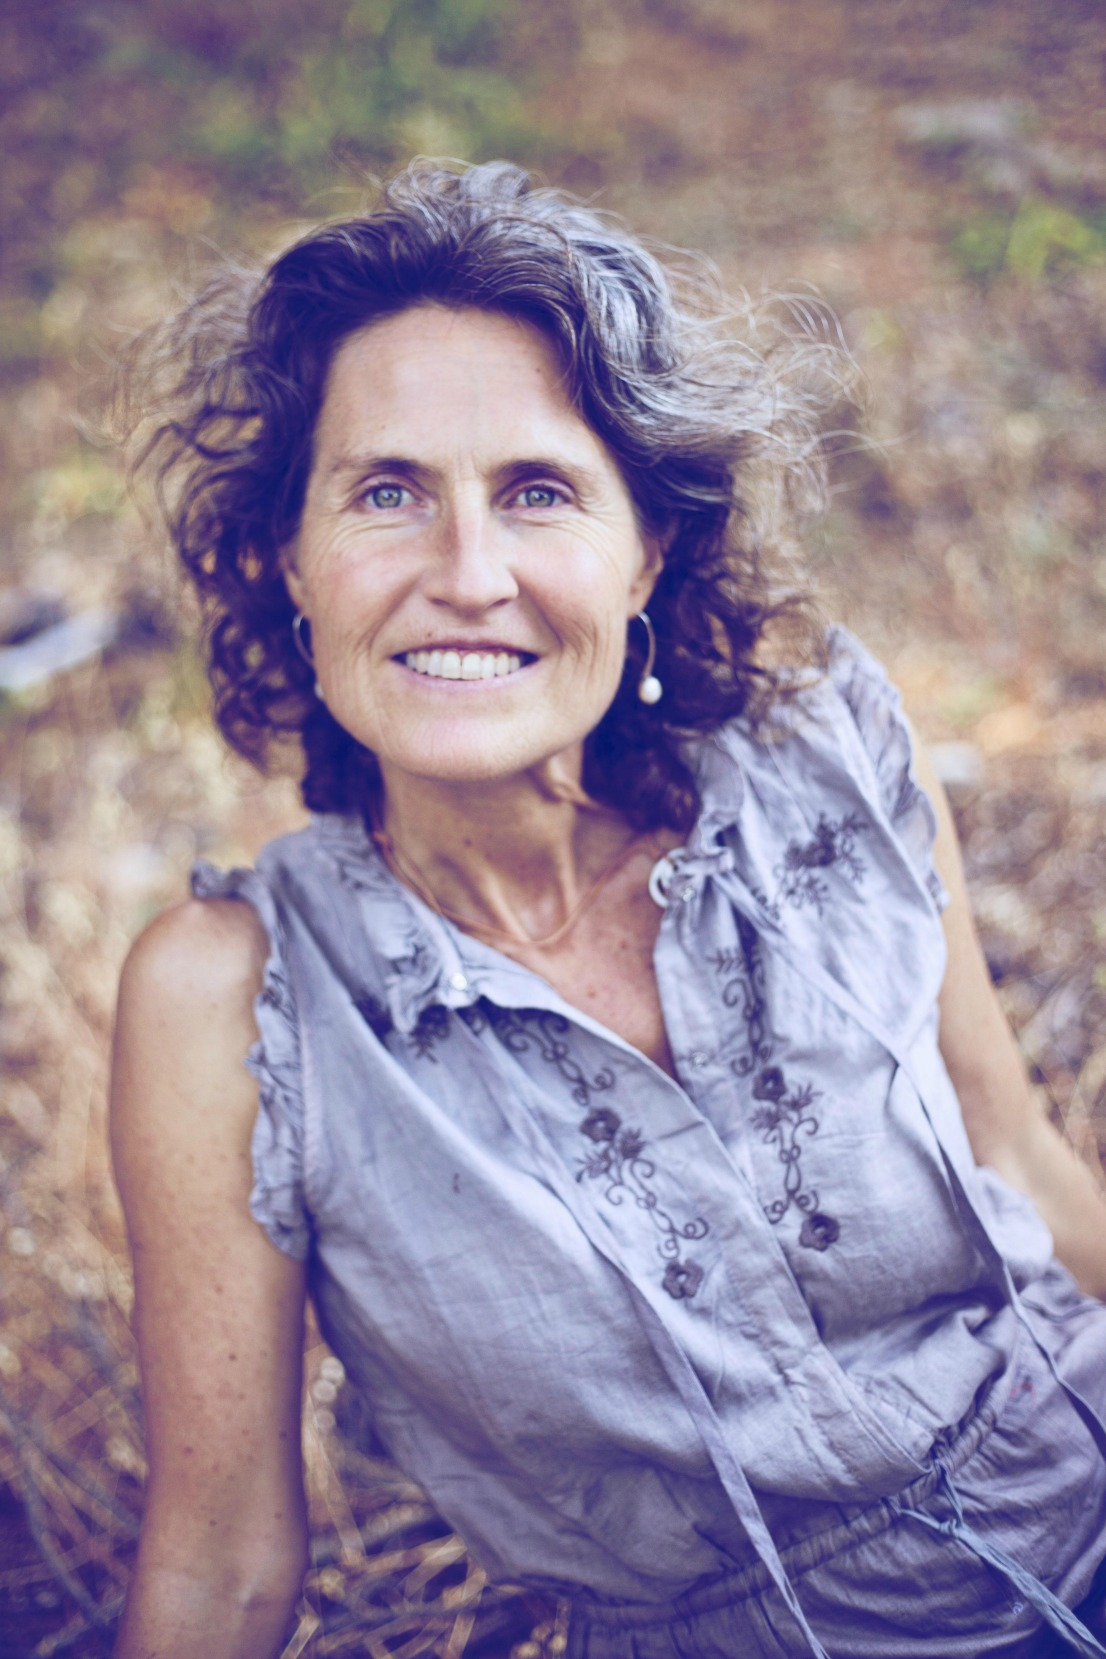 Shakti Malan was born in South Africa and has an extensive international and online teaching presence. She has a Ph.D. in Social Anthropology and through that work, she came to realize that the collective will only transform if individuals awaken to their true nature. Shakti has a gift and passion for supporting realization of truth in collectives. Shakti is an international teacher of Tantra, a practice that seeks to bring what we realize in transcendent awareness into our embodied living, and into our sexuality.